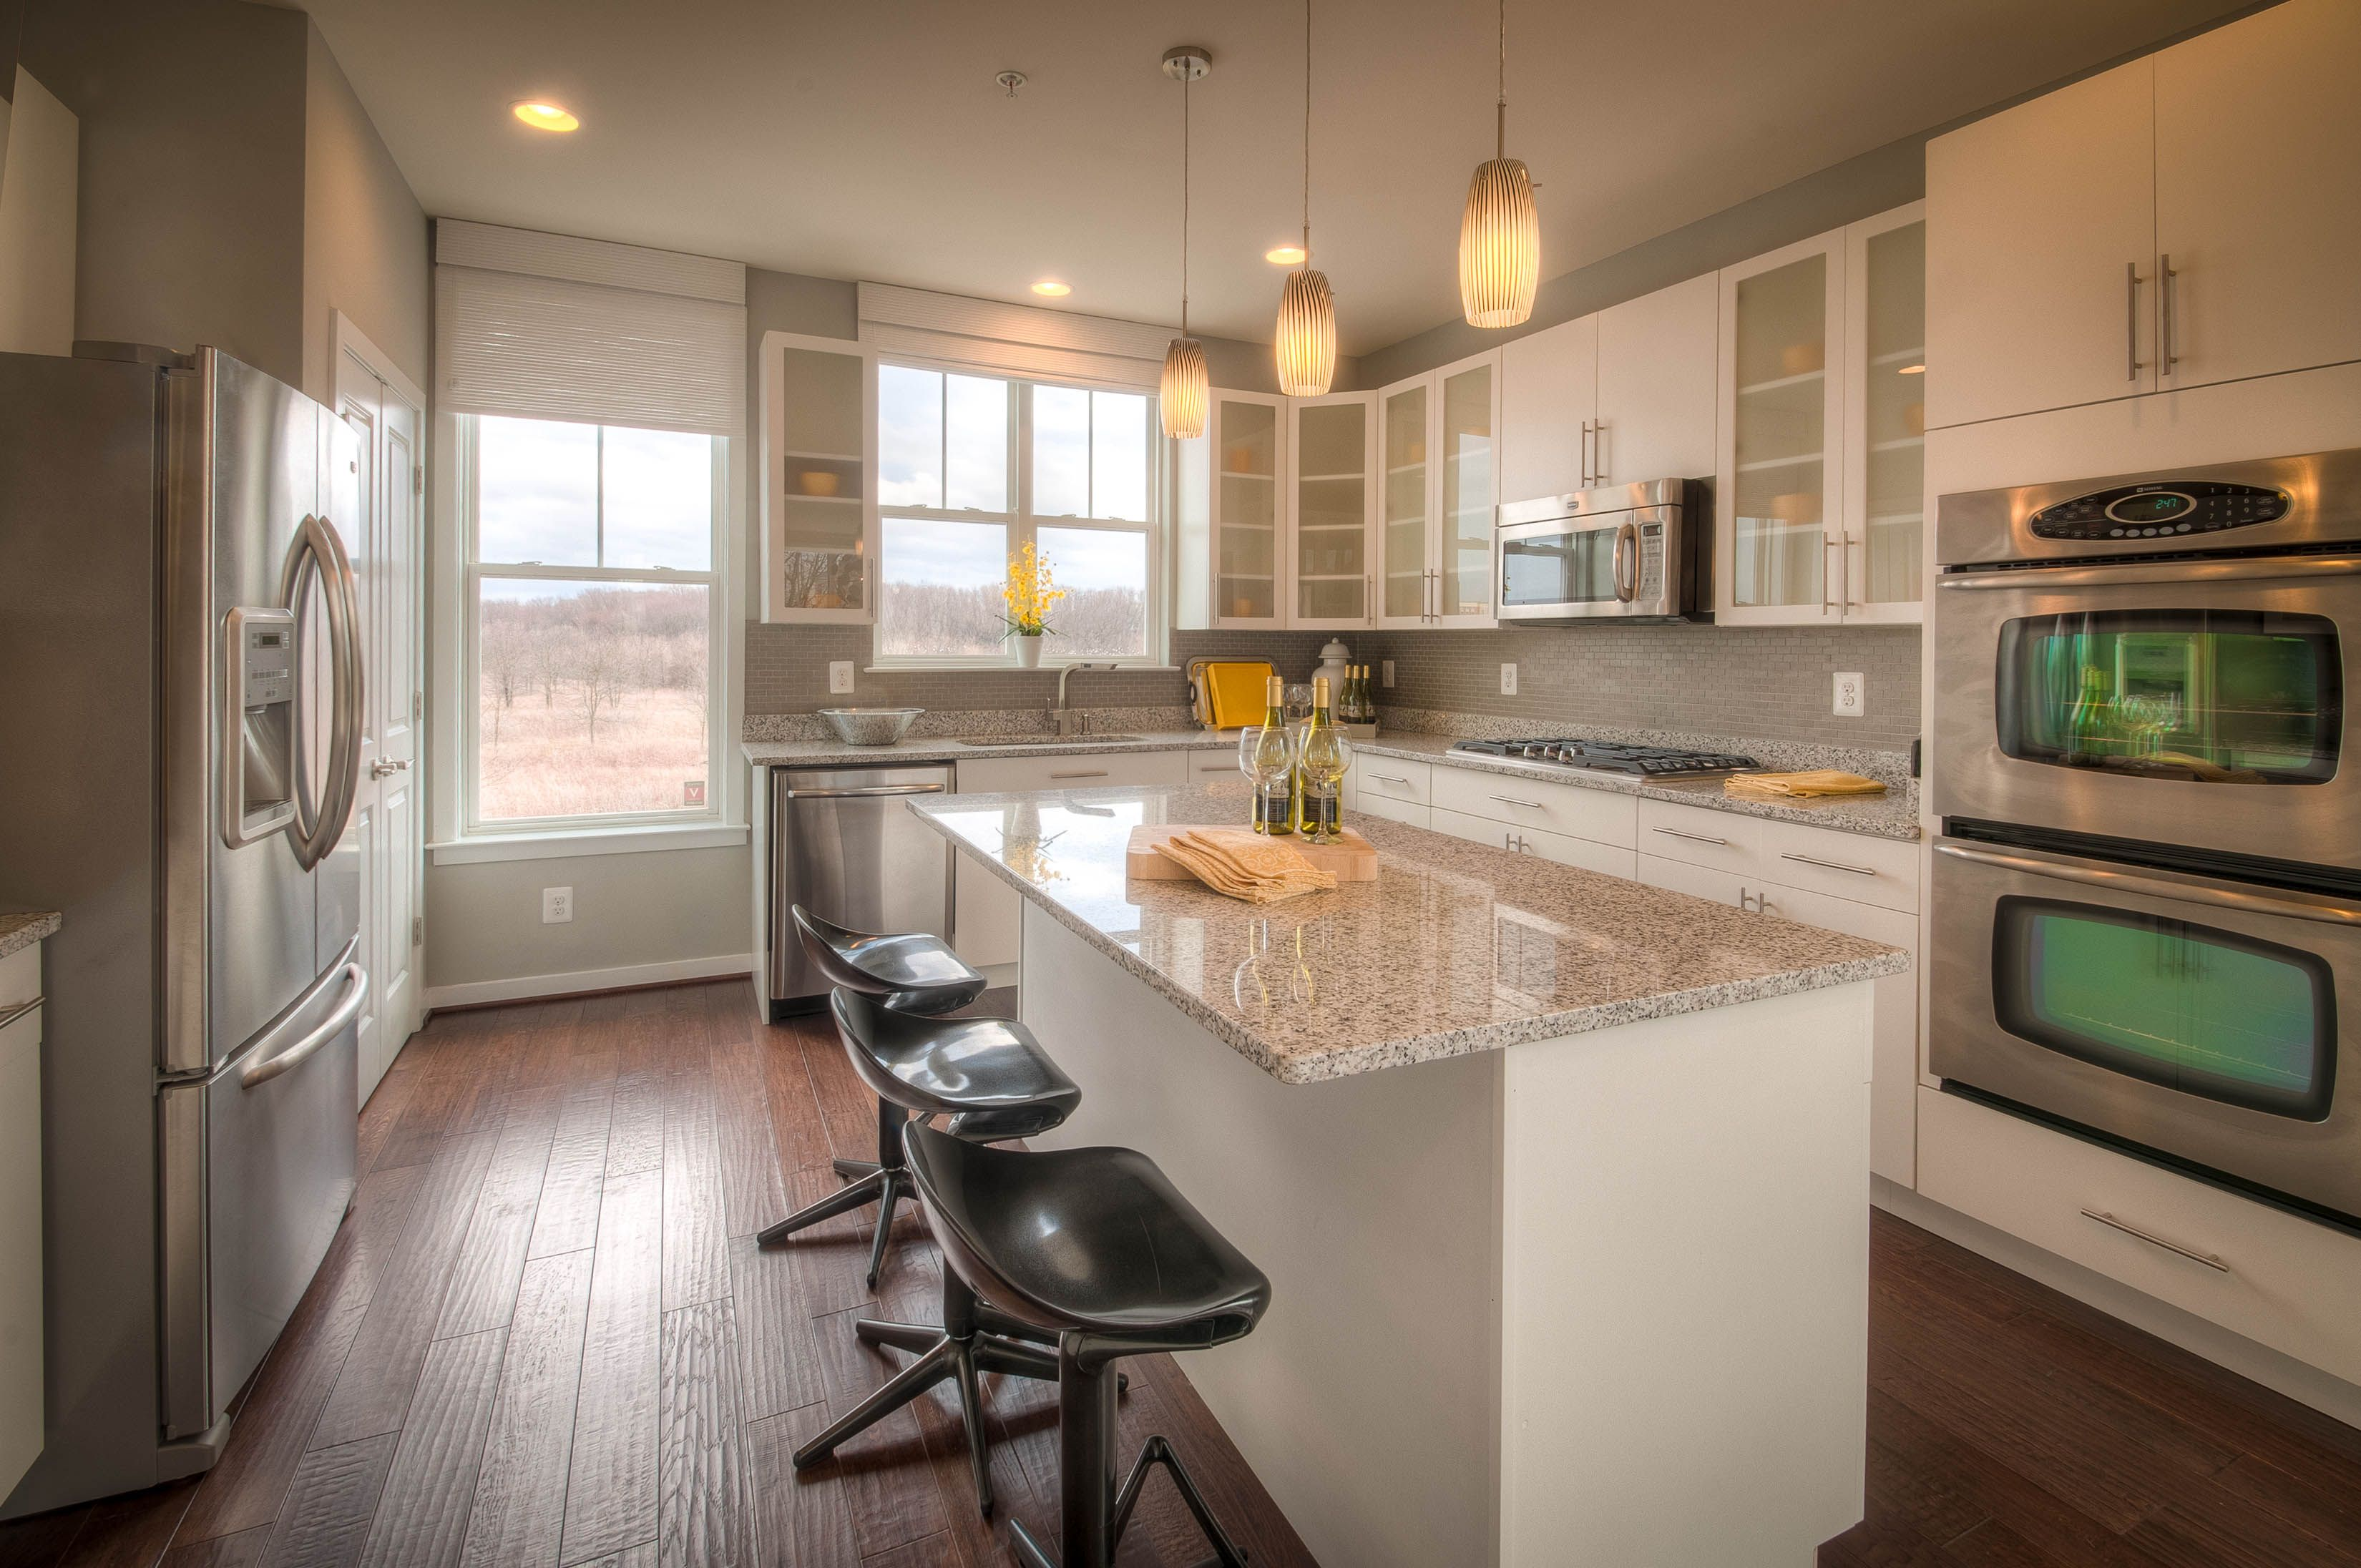 Townhome In Frederick Md Gourmet Chef S Kitchen Includes Stainless Steel Double Ovens French Door Refrigerator Granite Counters Is Tall Ceilings Kitchen Kitchen Cabinets